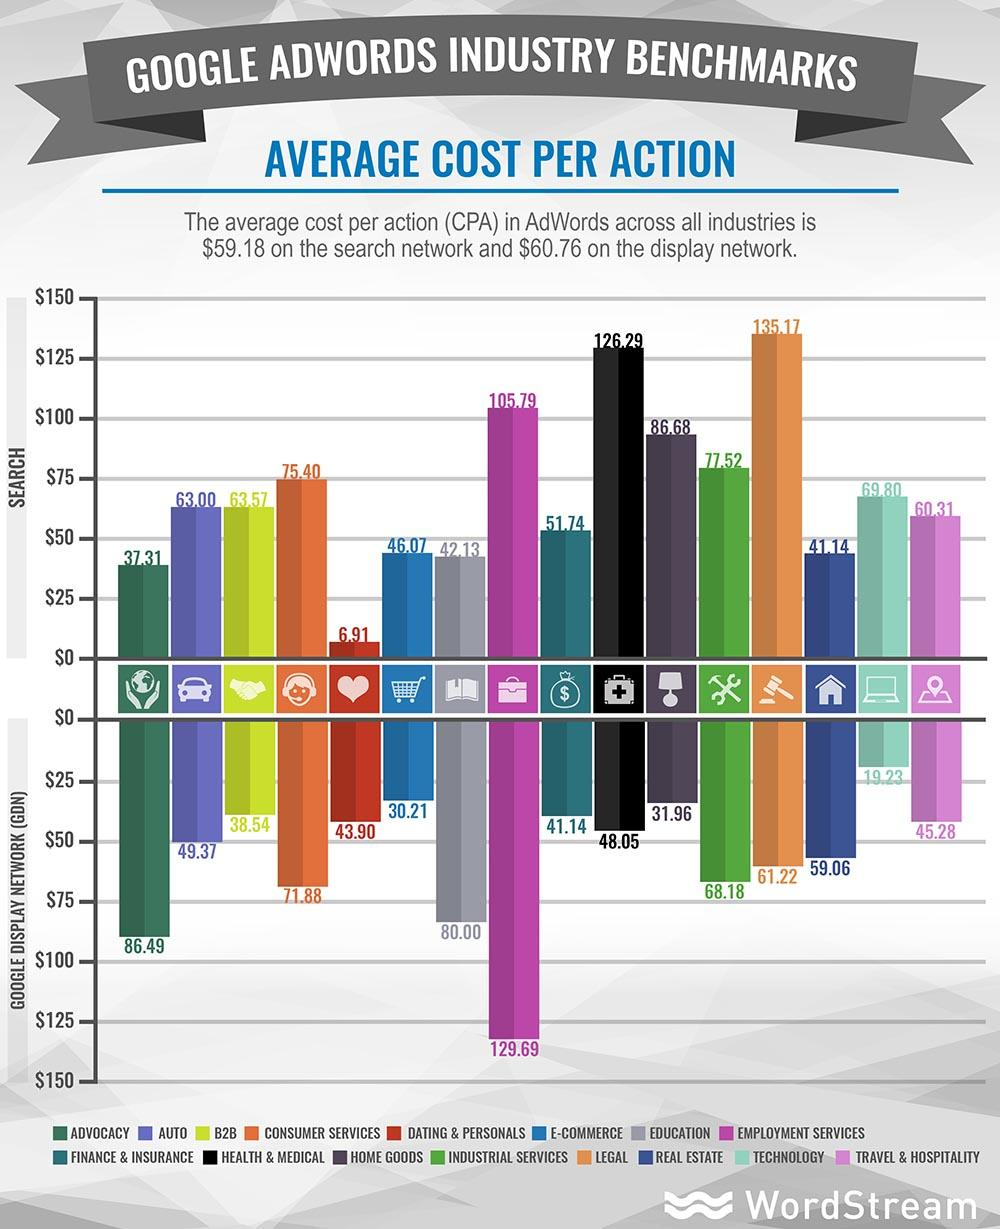 Google Adwords industry benchmarks average cost per action.